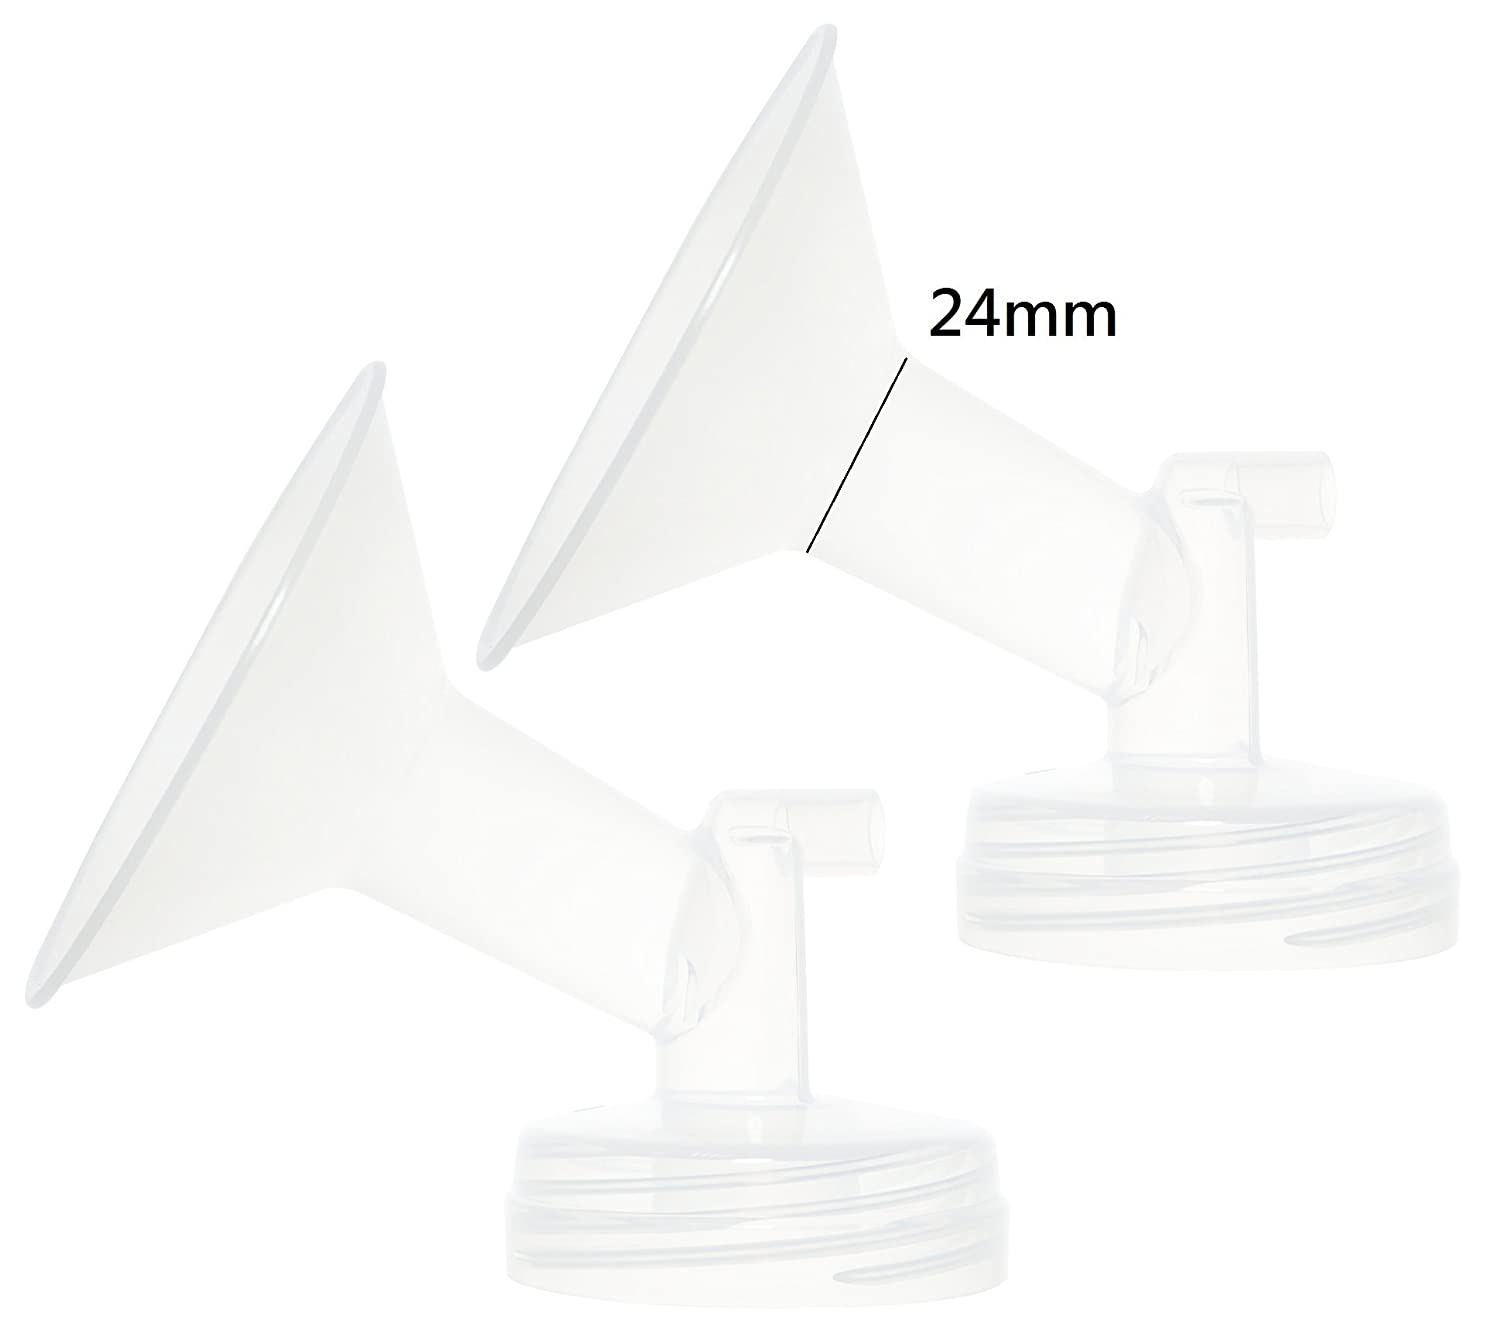 Nenesupply Generic Flange 21mm for Spectra S2 Spectra S1 Spectra 9 Plus Breastpump. Made By Nenesupply. Not Original Spectra Flange Not Original Spectra Baby USA Parts Use with WideMouth Bottle (Flange 21mm (S)) N052SF.24